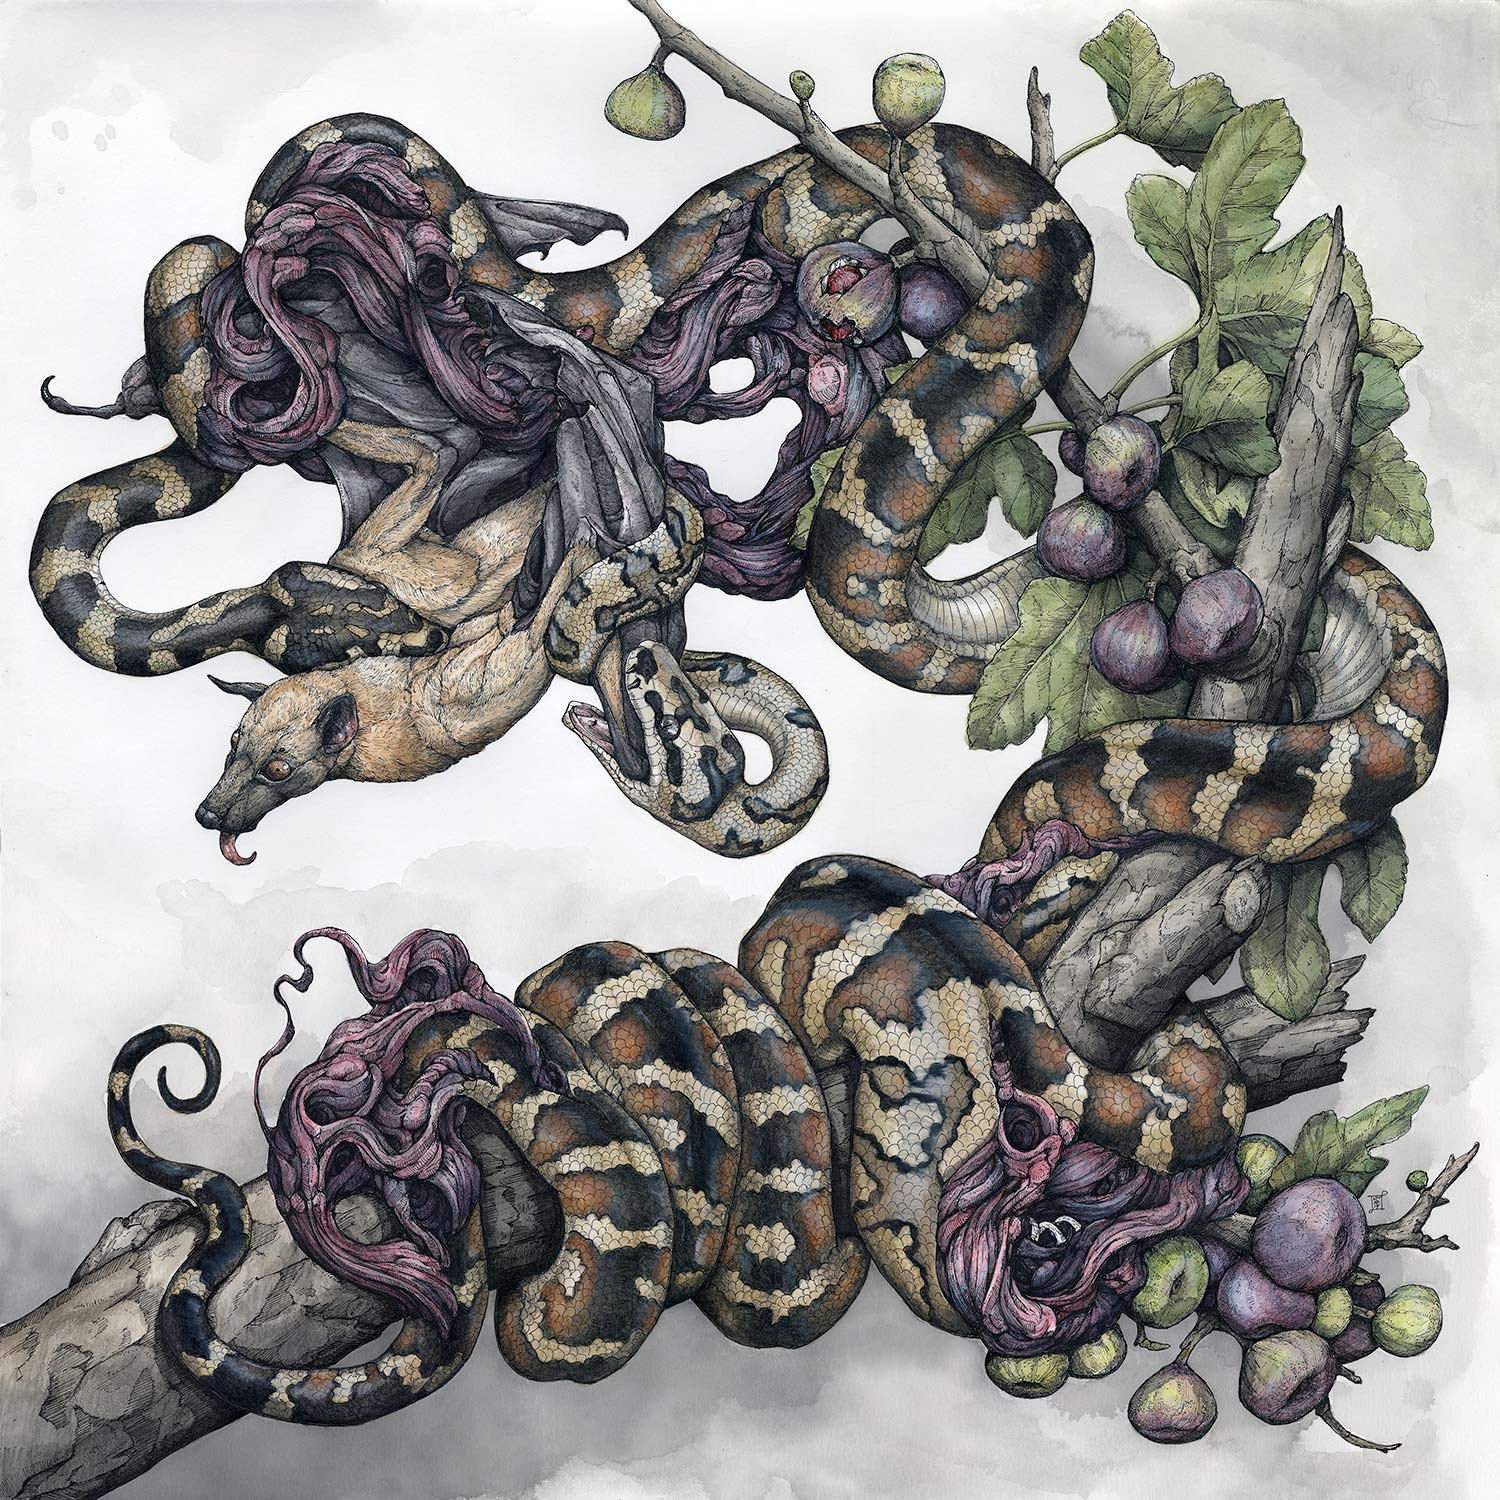 Lauren Marx - untitled commission, snakes